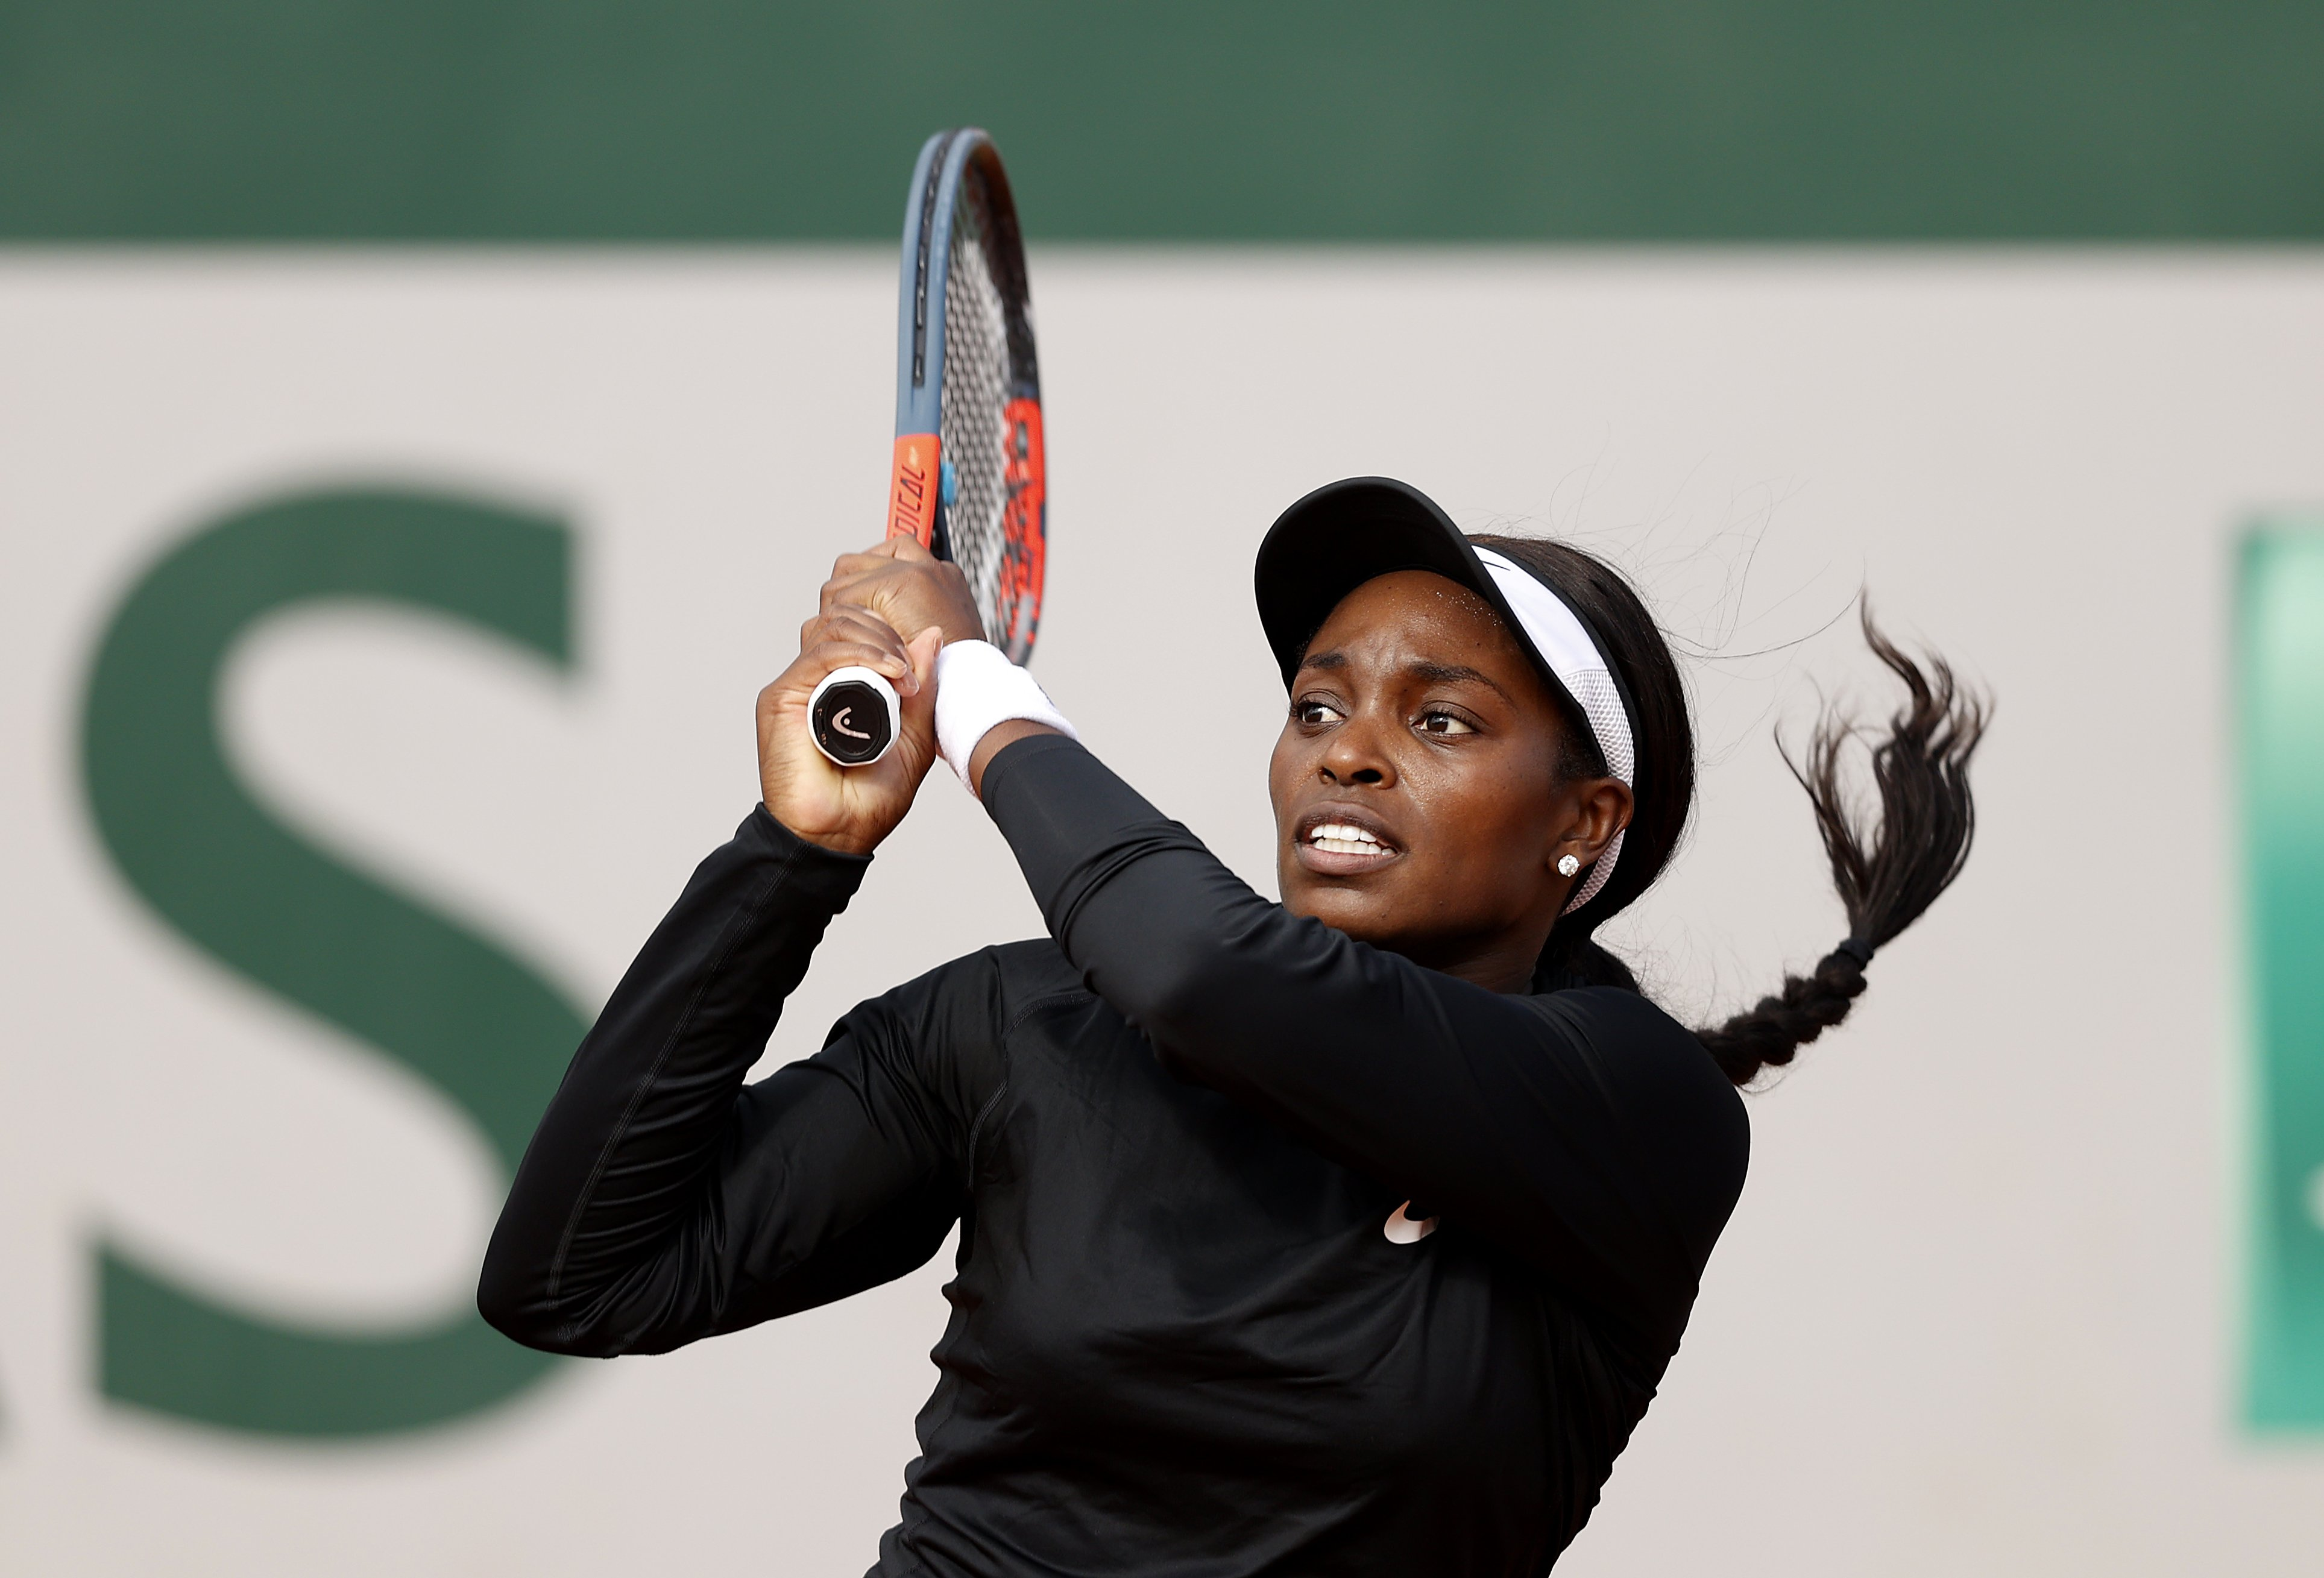 Sloane Stephens pictured at the 2020 French Open at Roland Garros on October 01, 2020 in Paris, France. | Source: Getty Images